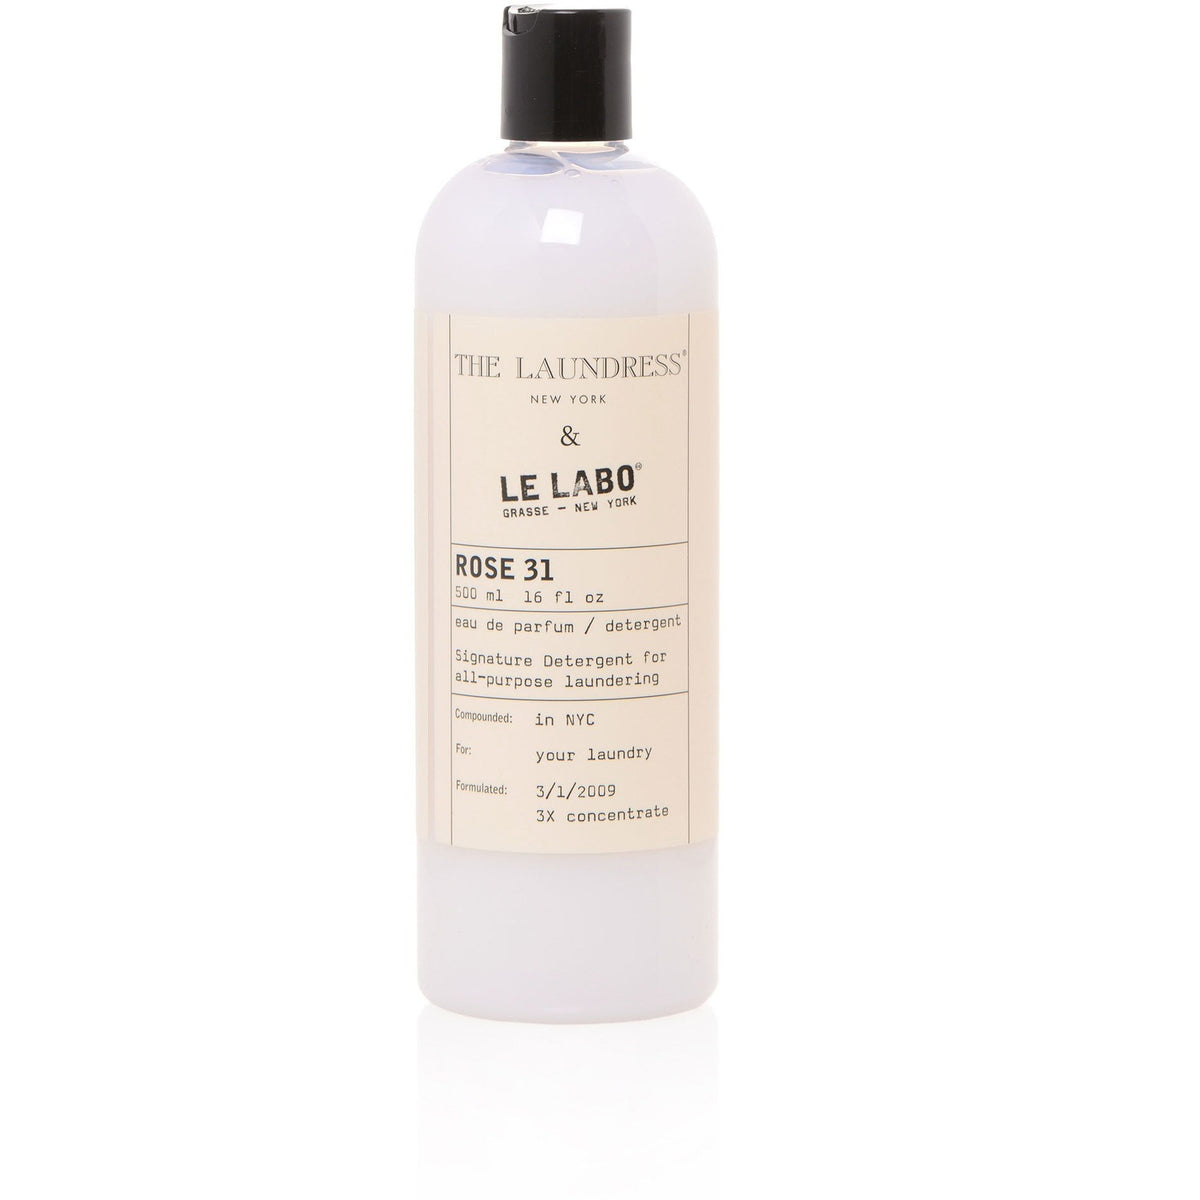 the laundress - le labo rose 31, signature detergent[product_type ]the laundress - Kiss and Makeup